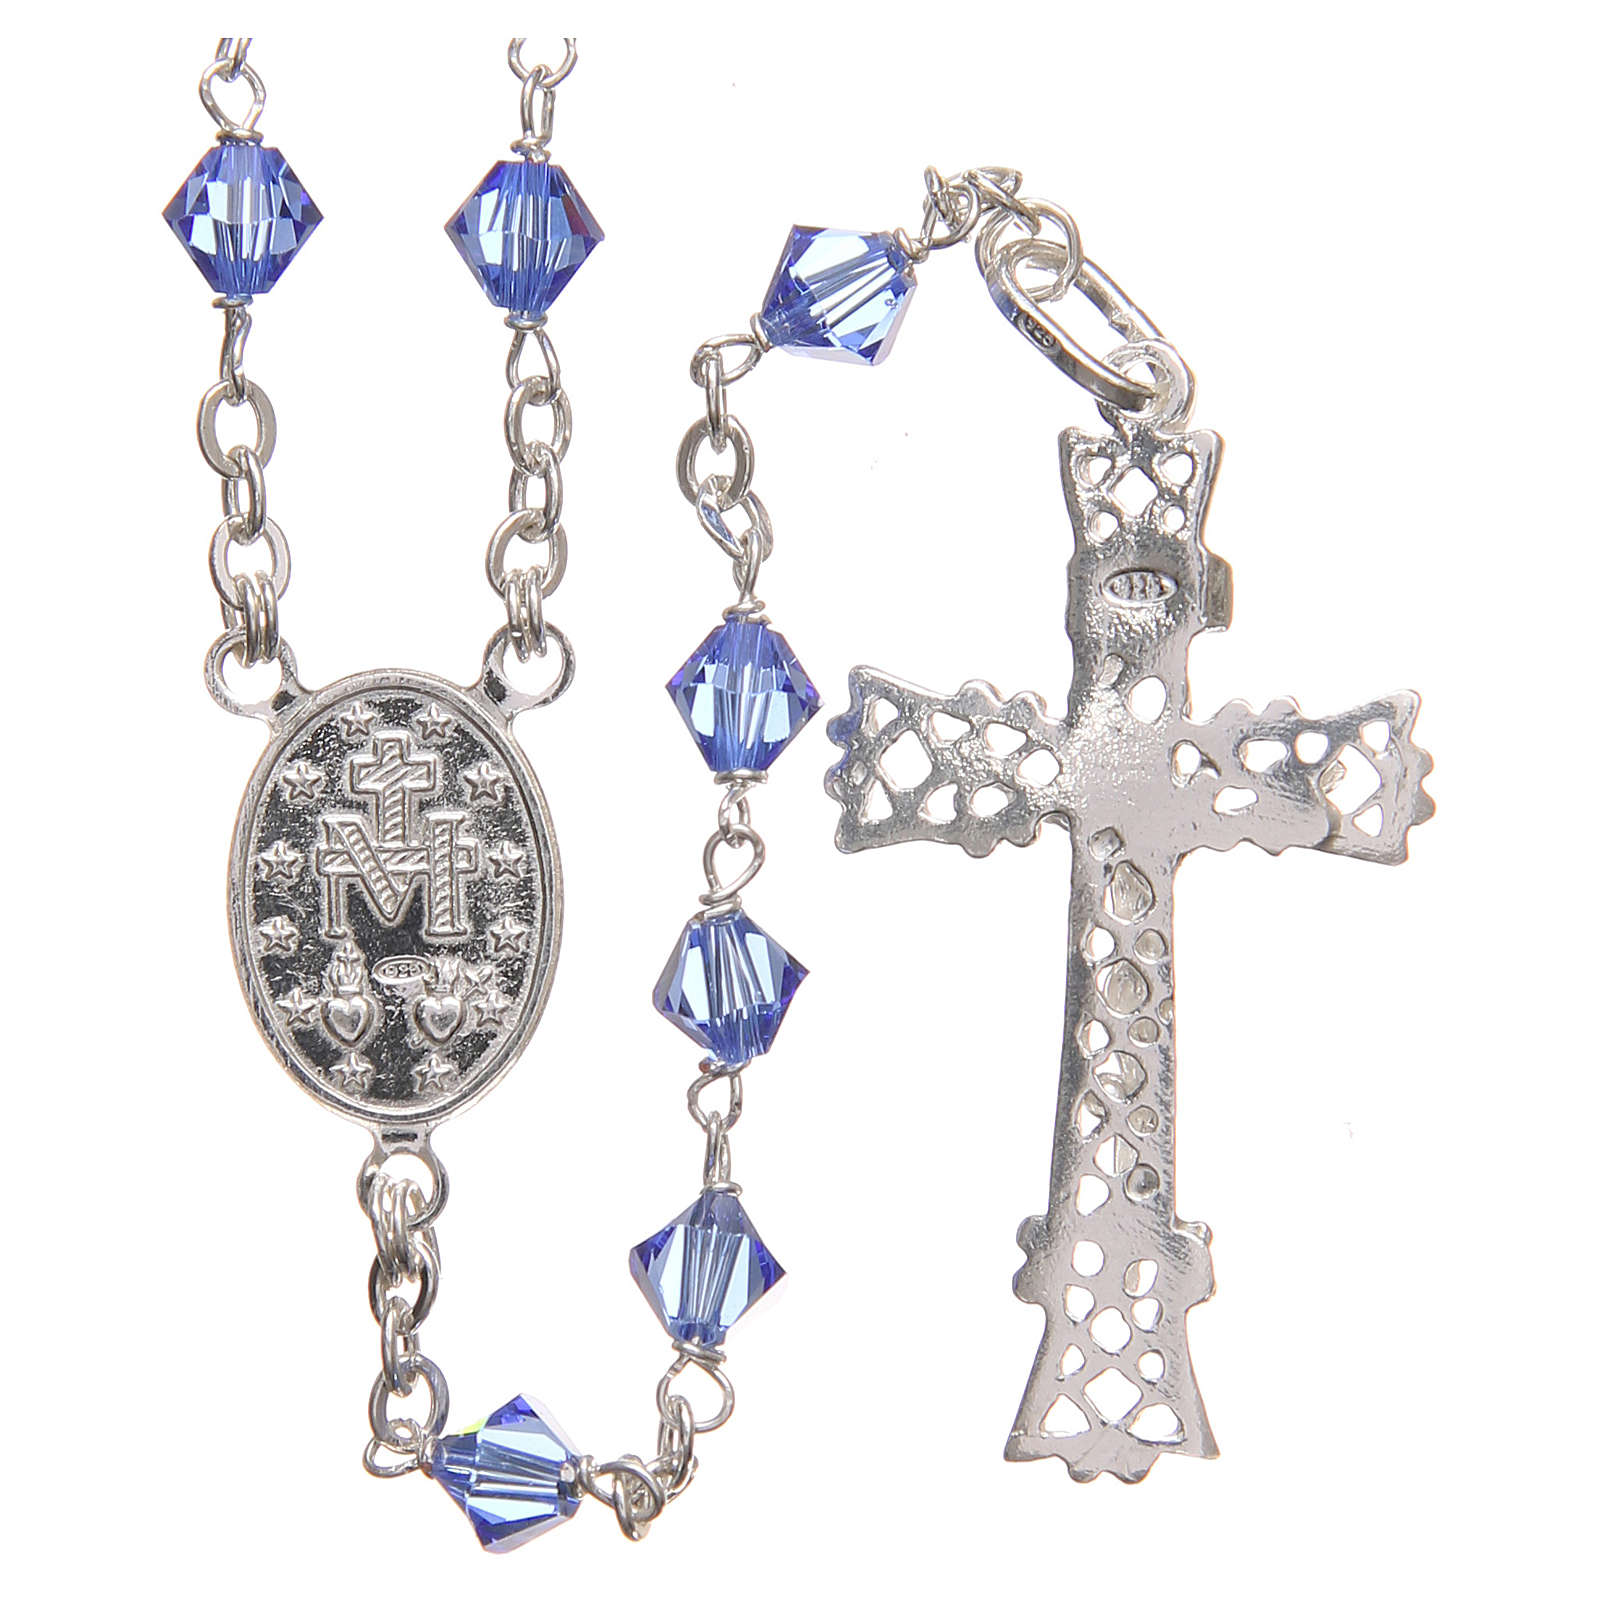 Rosary beads in Swarovski and sterling silver 6mm aquamarine 4